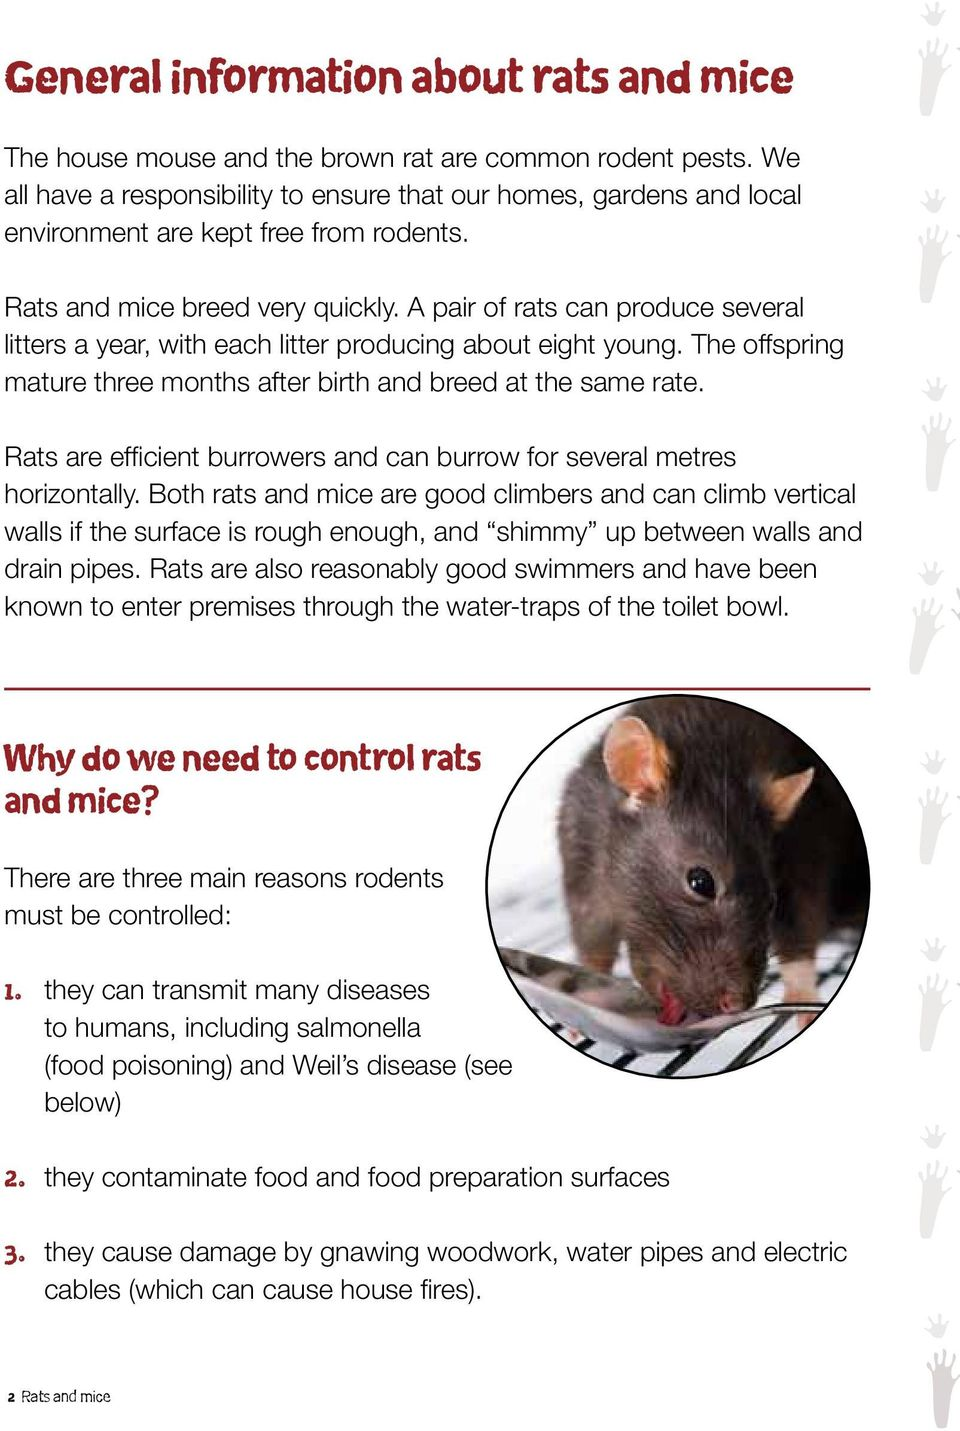 A pair of rats can produce several litters a year, with each litter producing about eight young. The offspring mature three months after birth and breed at the same rate.